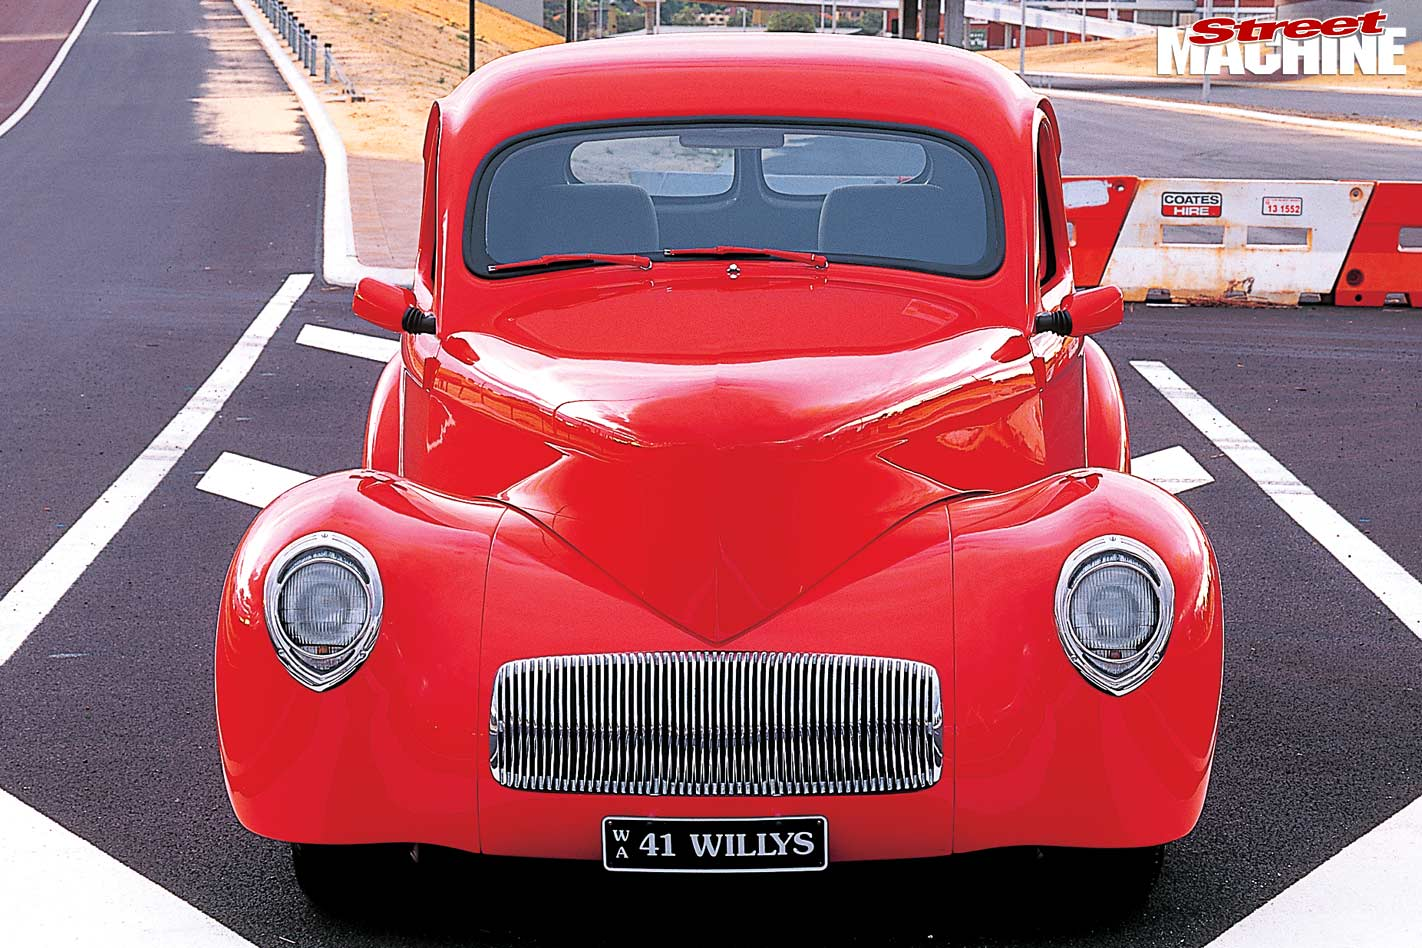 383-cube 1941 Willys coupe - flashback